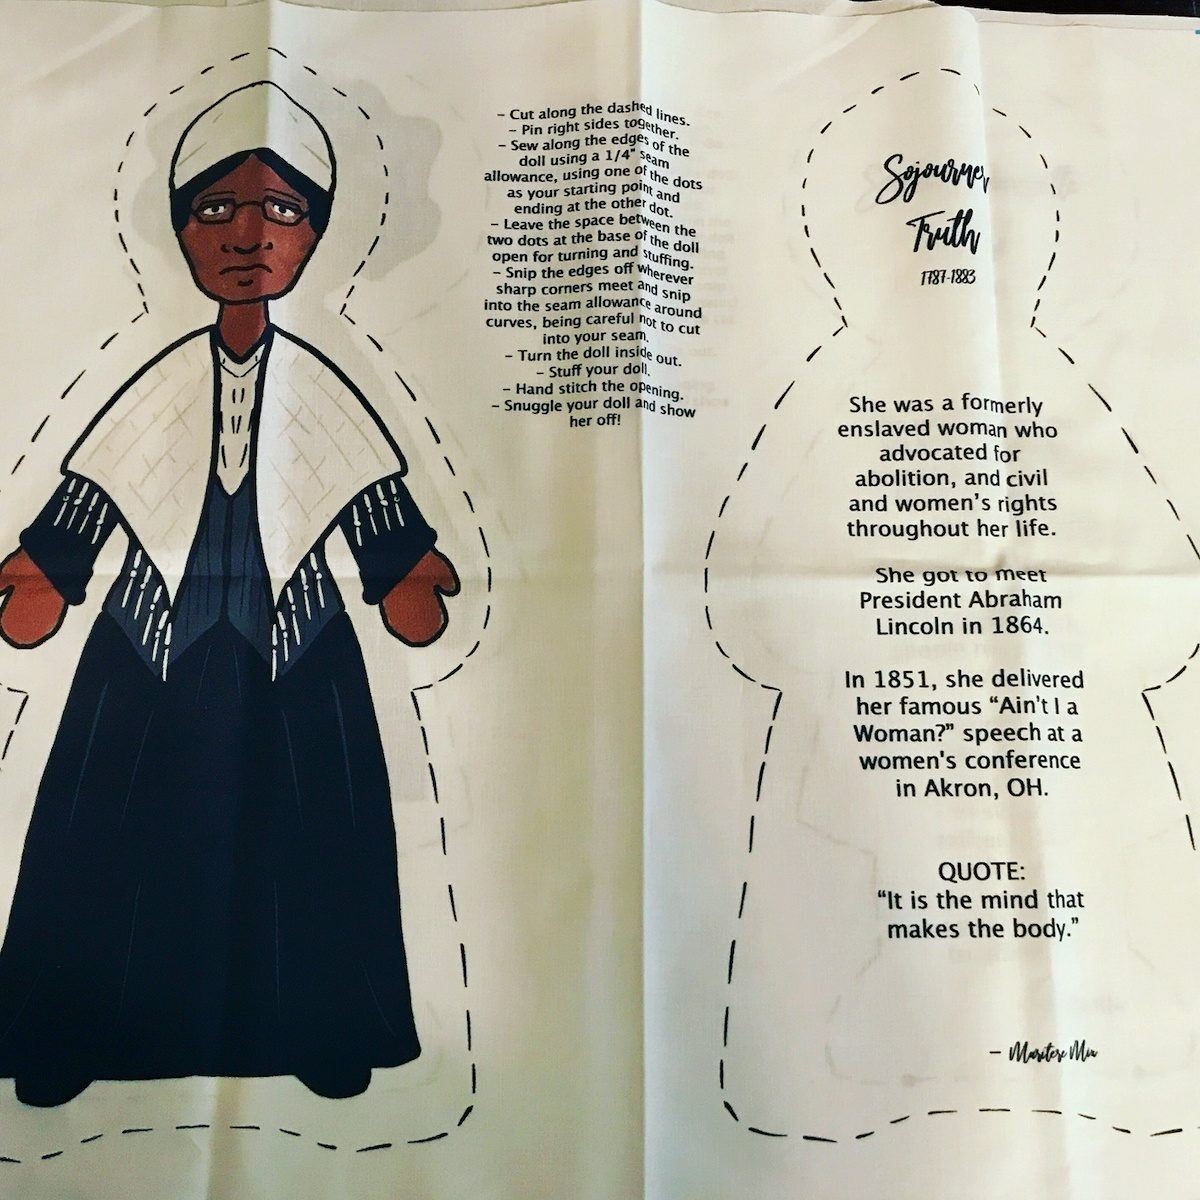 Educational Sojourner Truth doll